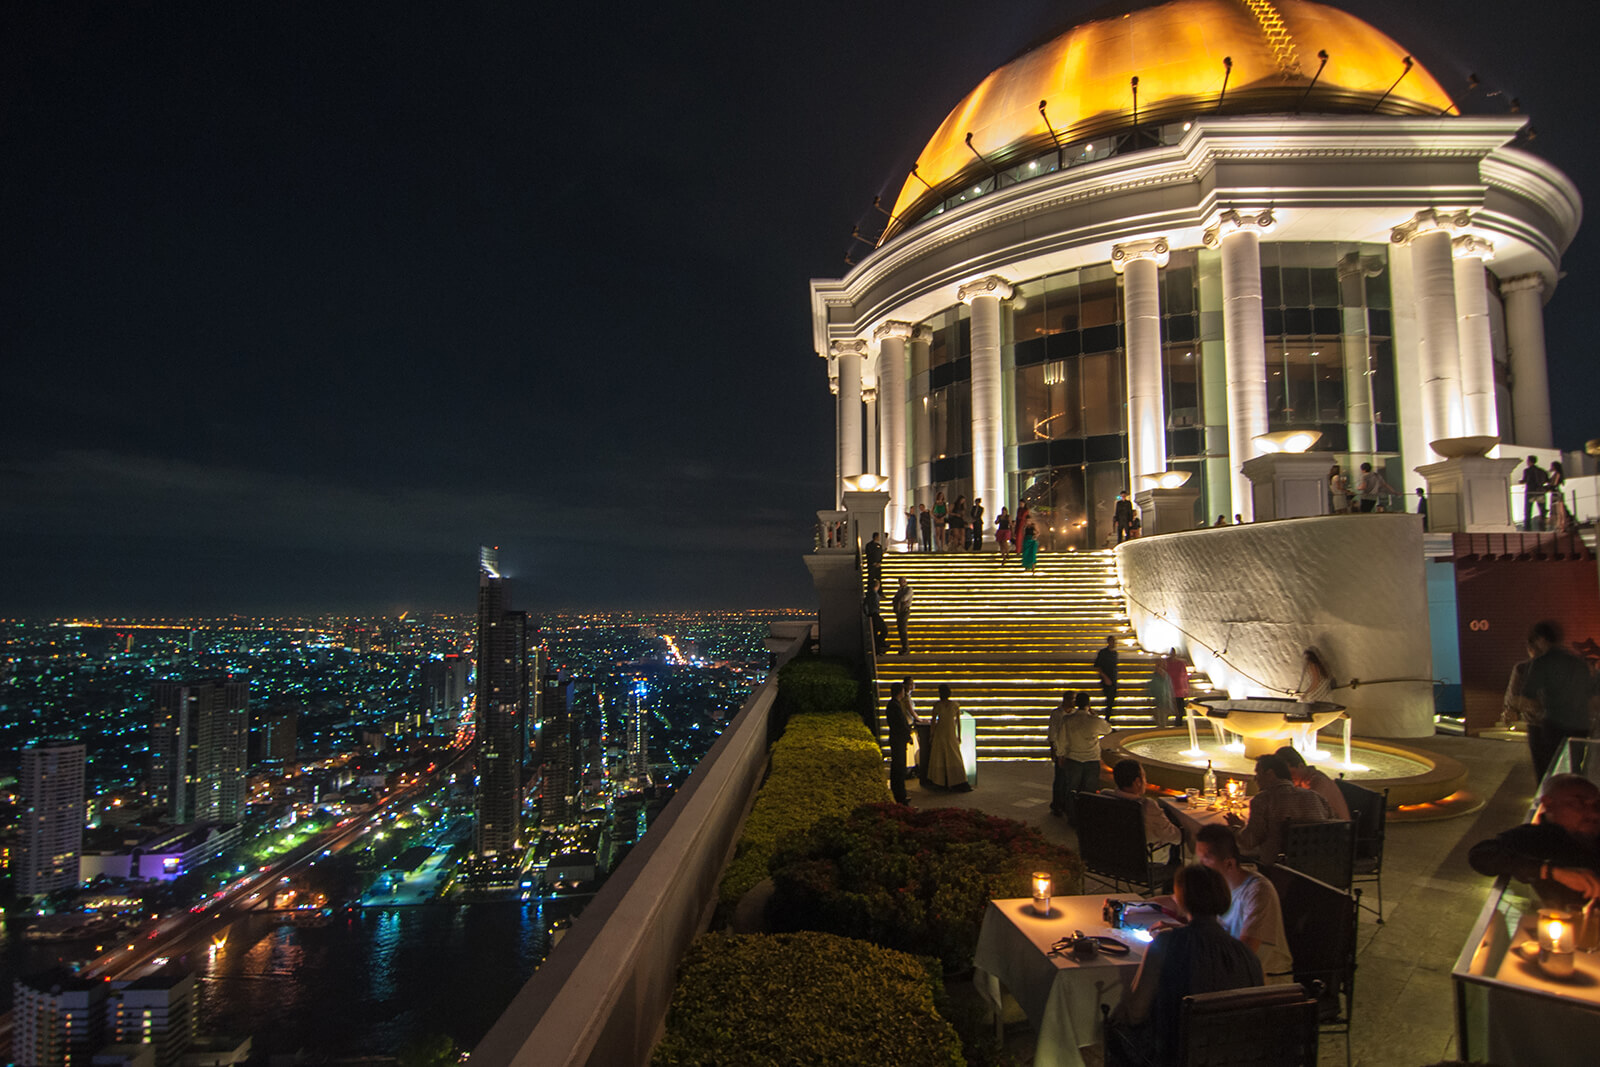 Bangkok Sky Bar, made famous by The Hangover Part Two